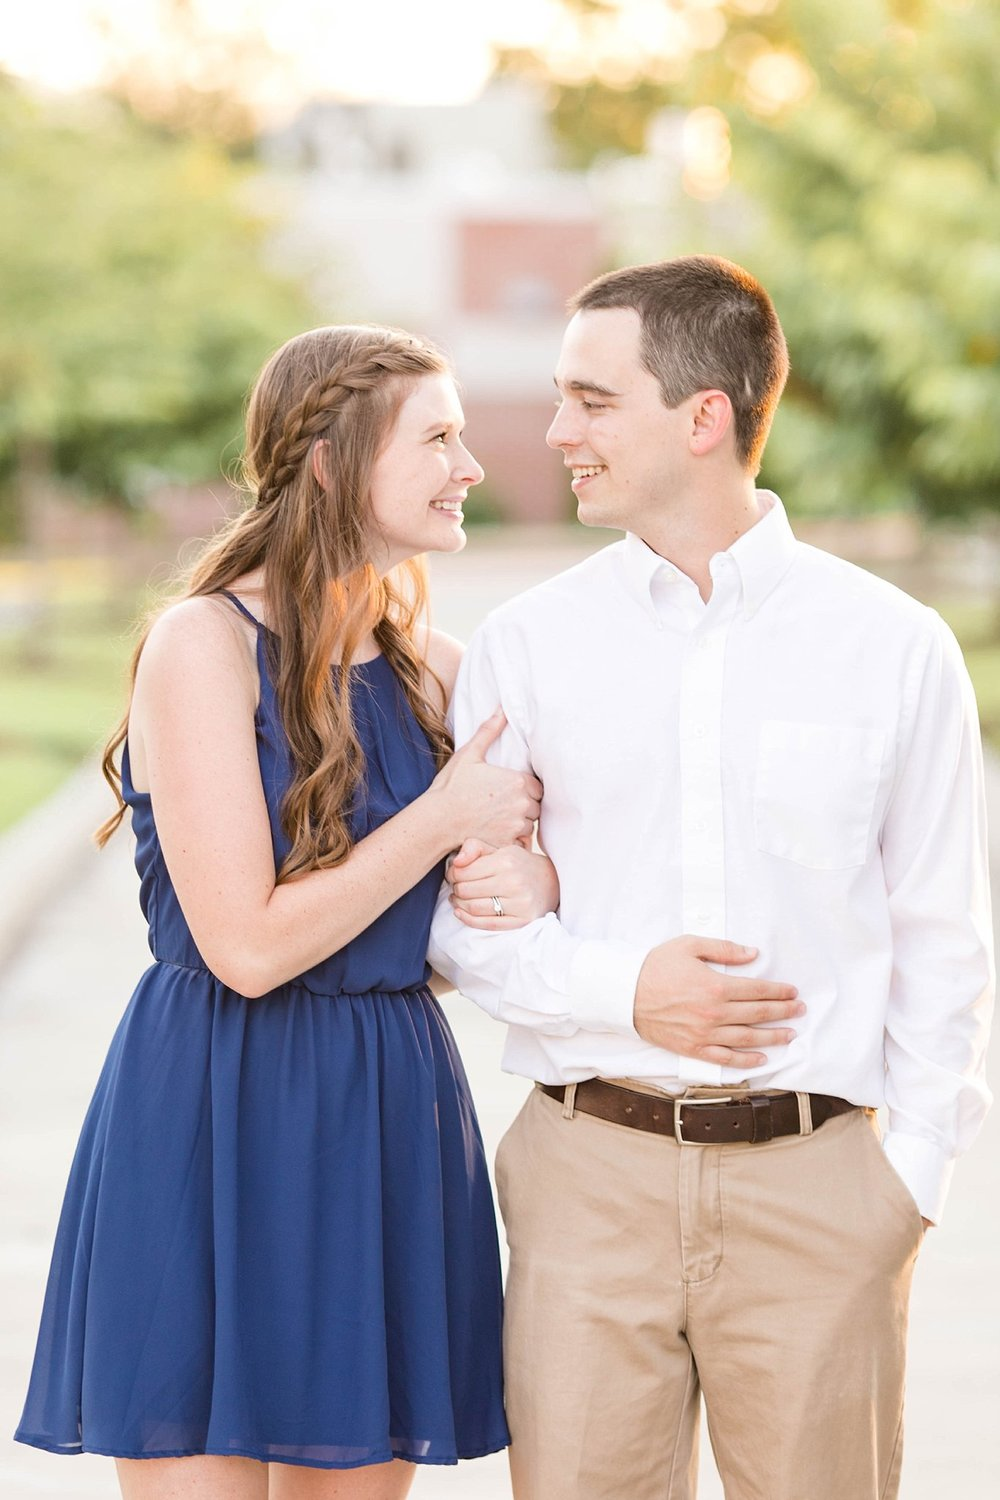 engagement, anniversary, wedding photography, Tri Cities, Johnson City, Elizabethton, Kingsport, Bristol, East Tennessee, photographer, Milligan College